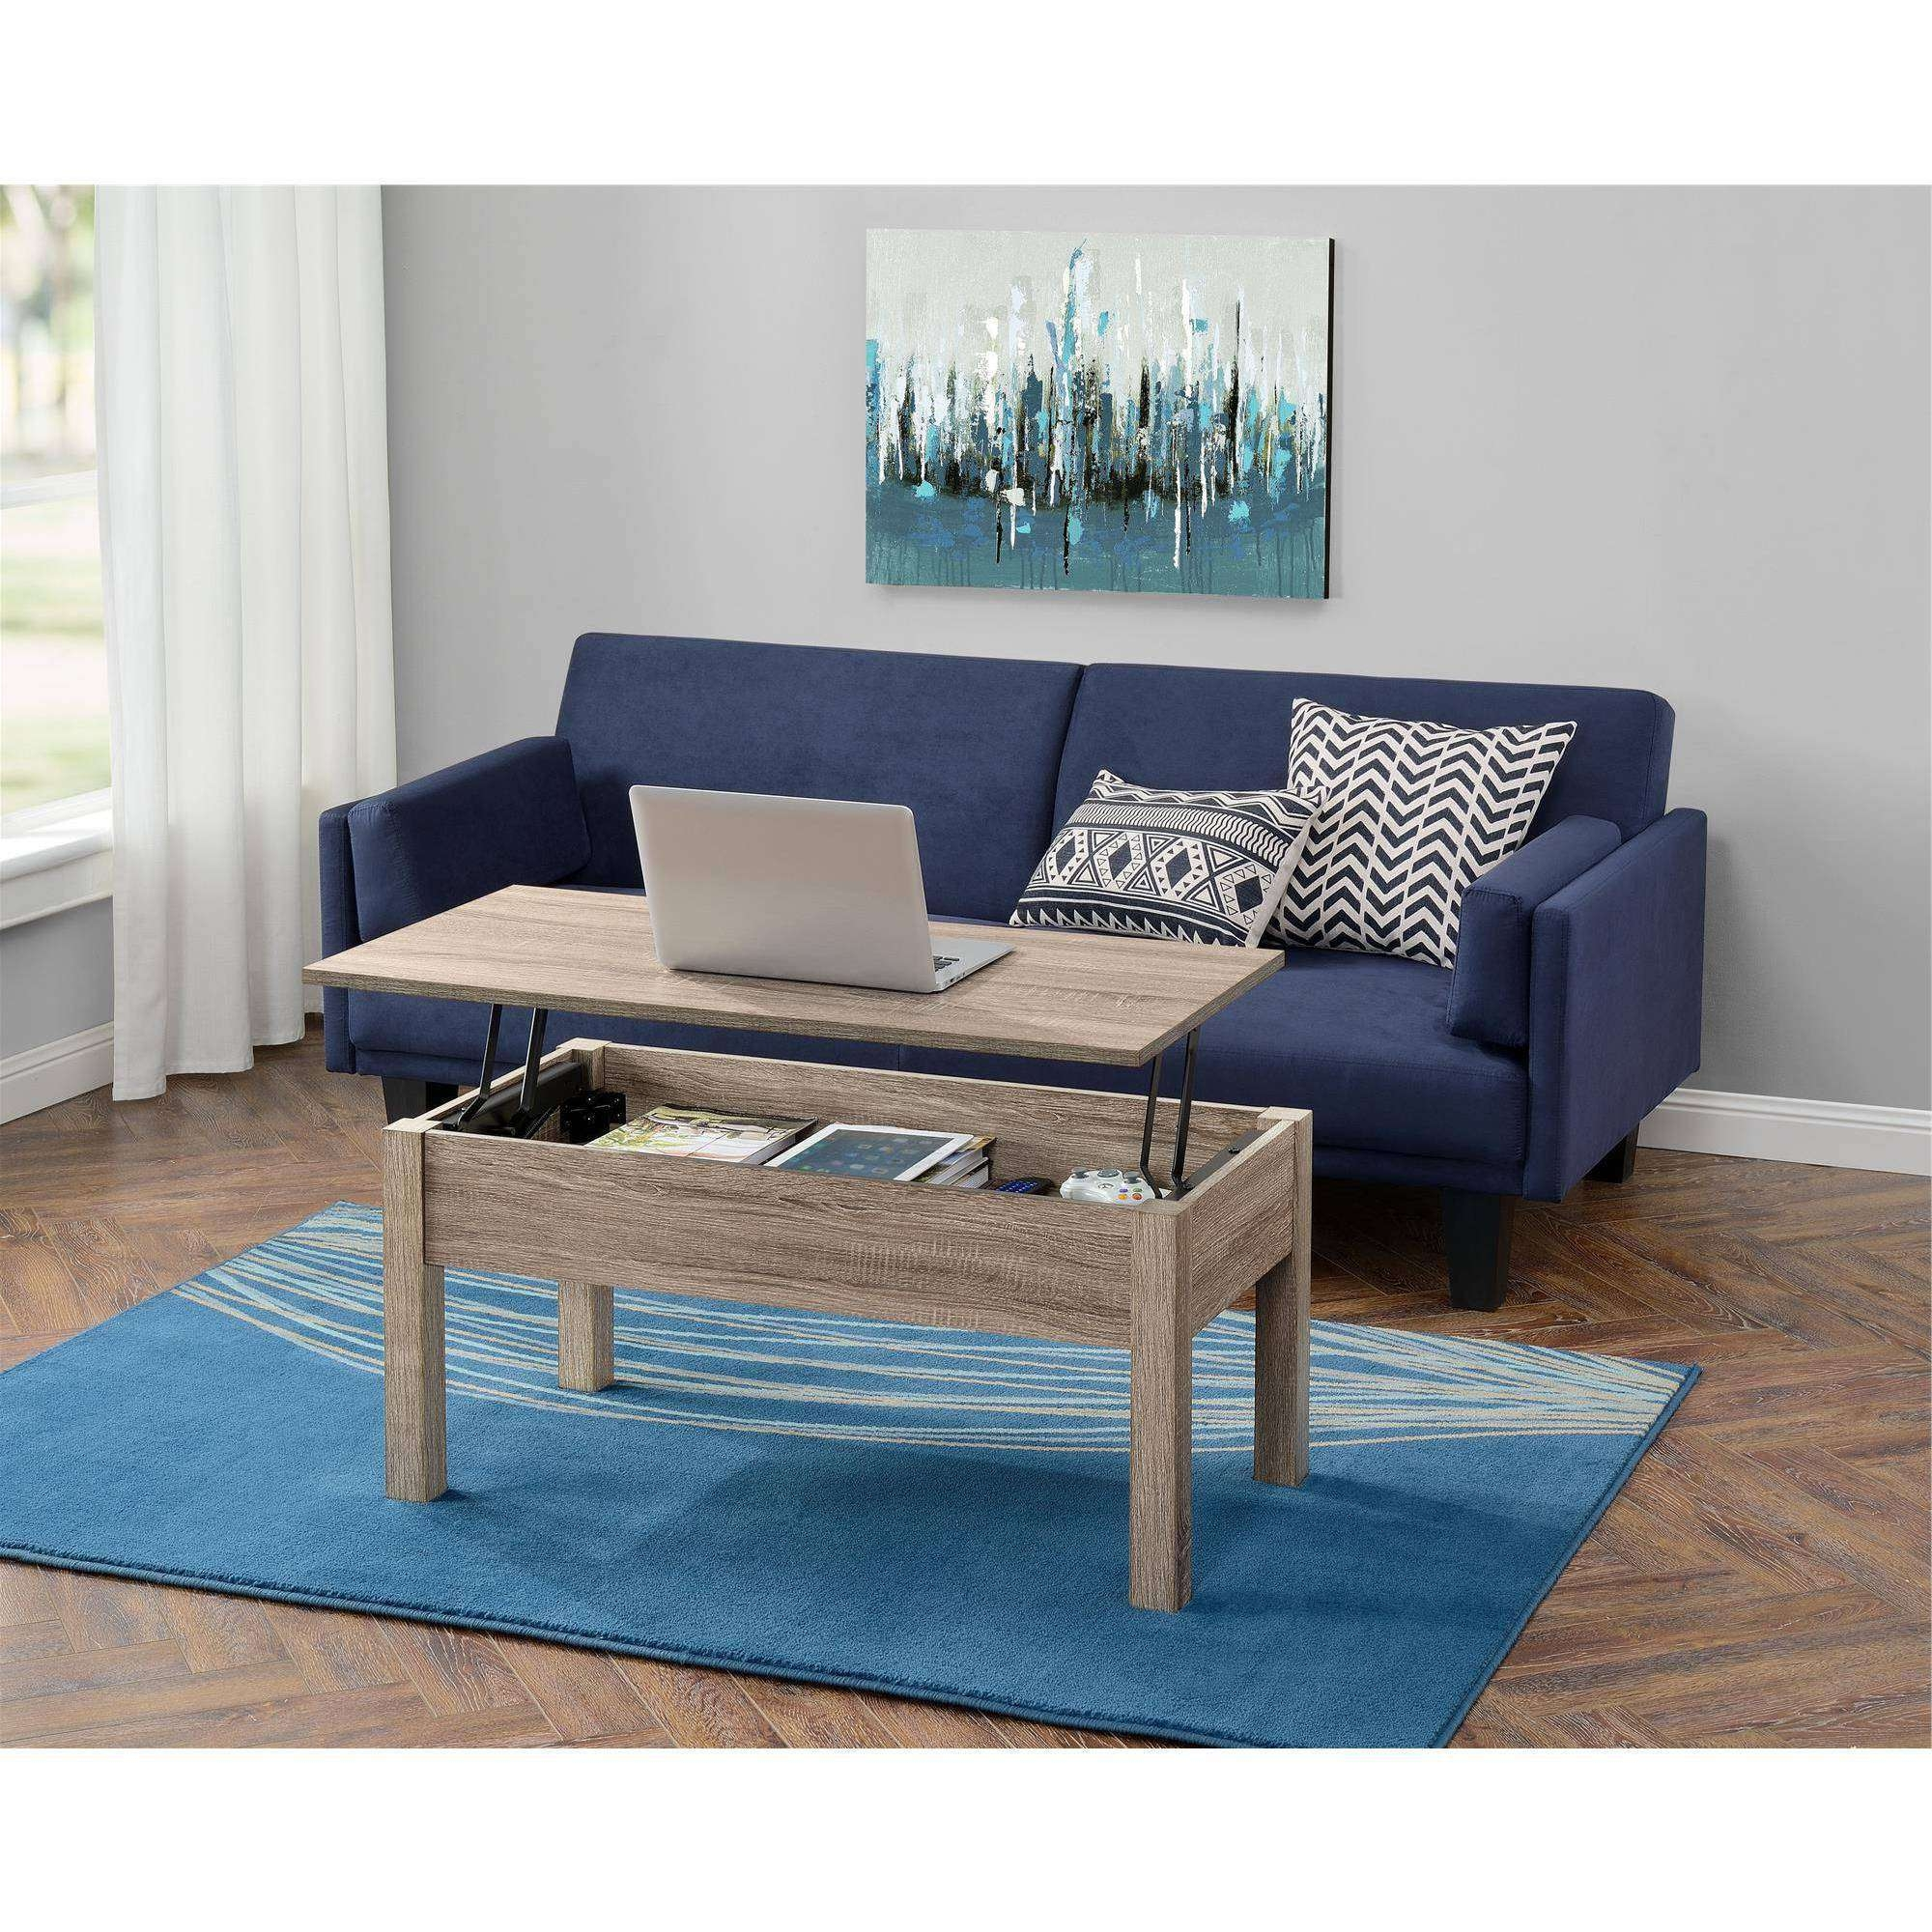 Well Known Pop Up Top Coffee Tables Inside Coffee Table Pop Up Top Design Ideas Tv / Thippo (View 15 of 20)